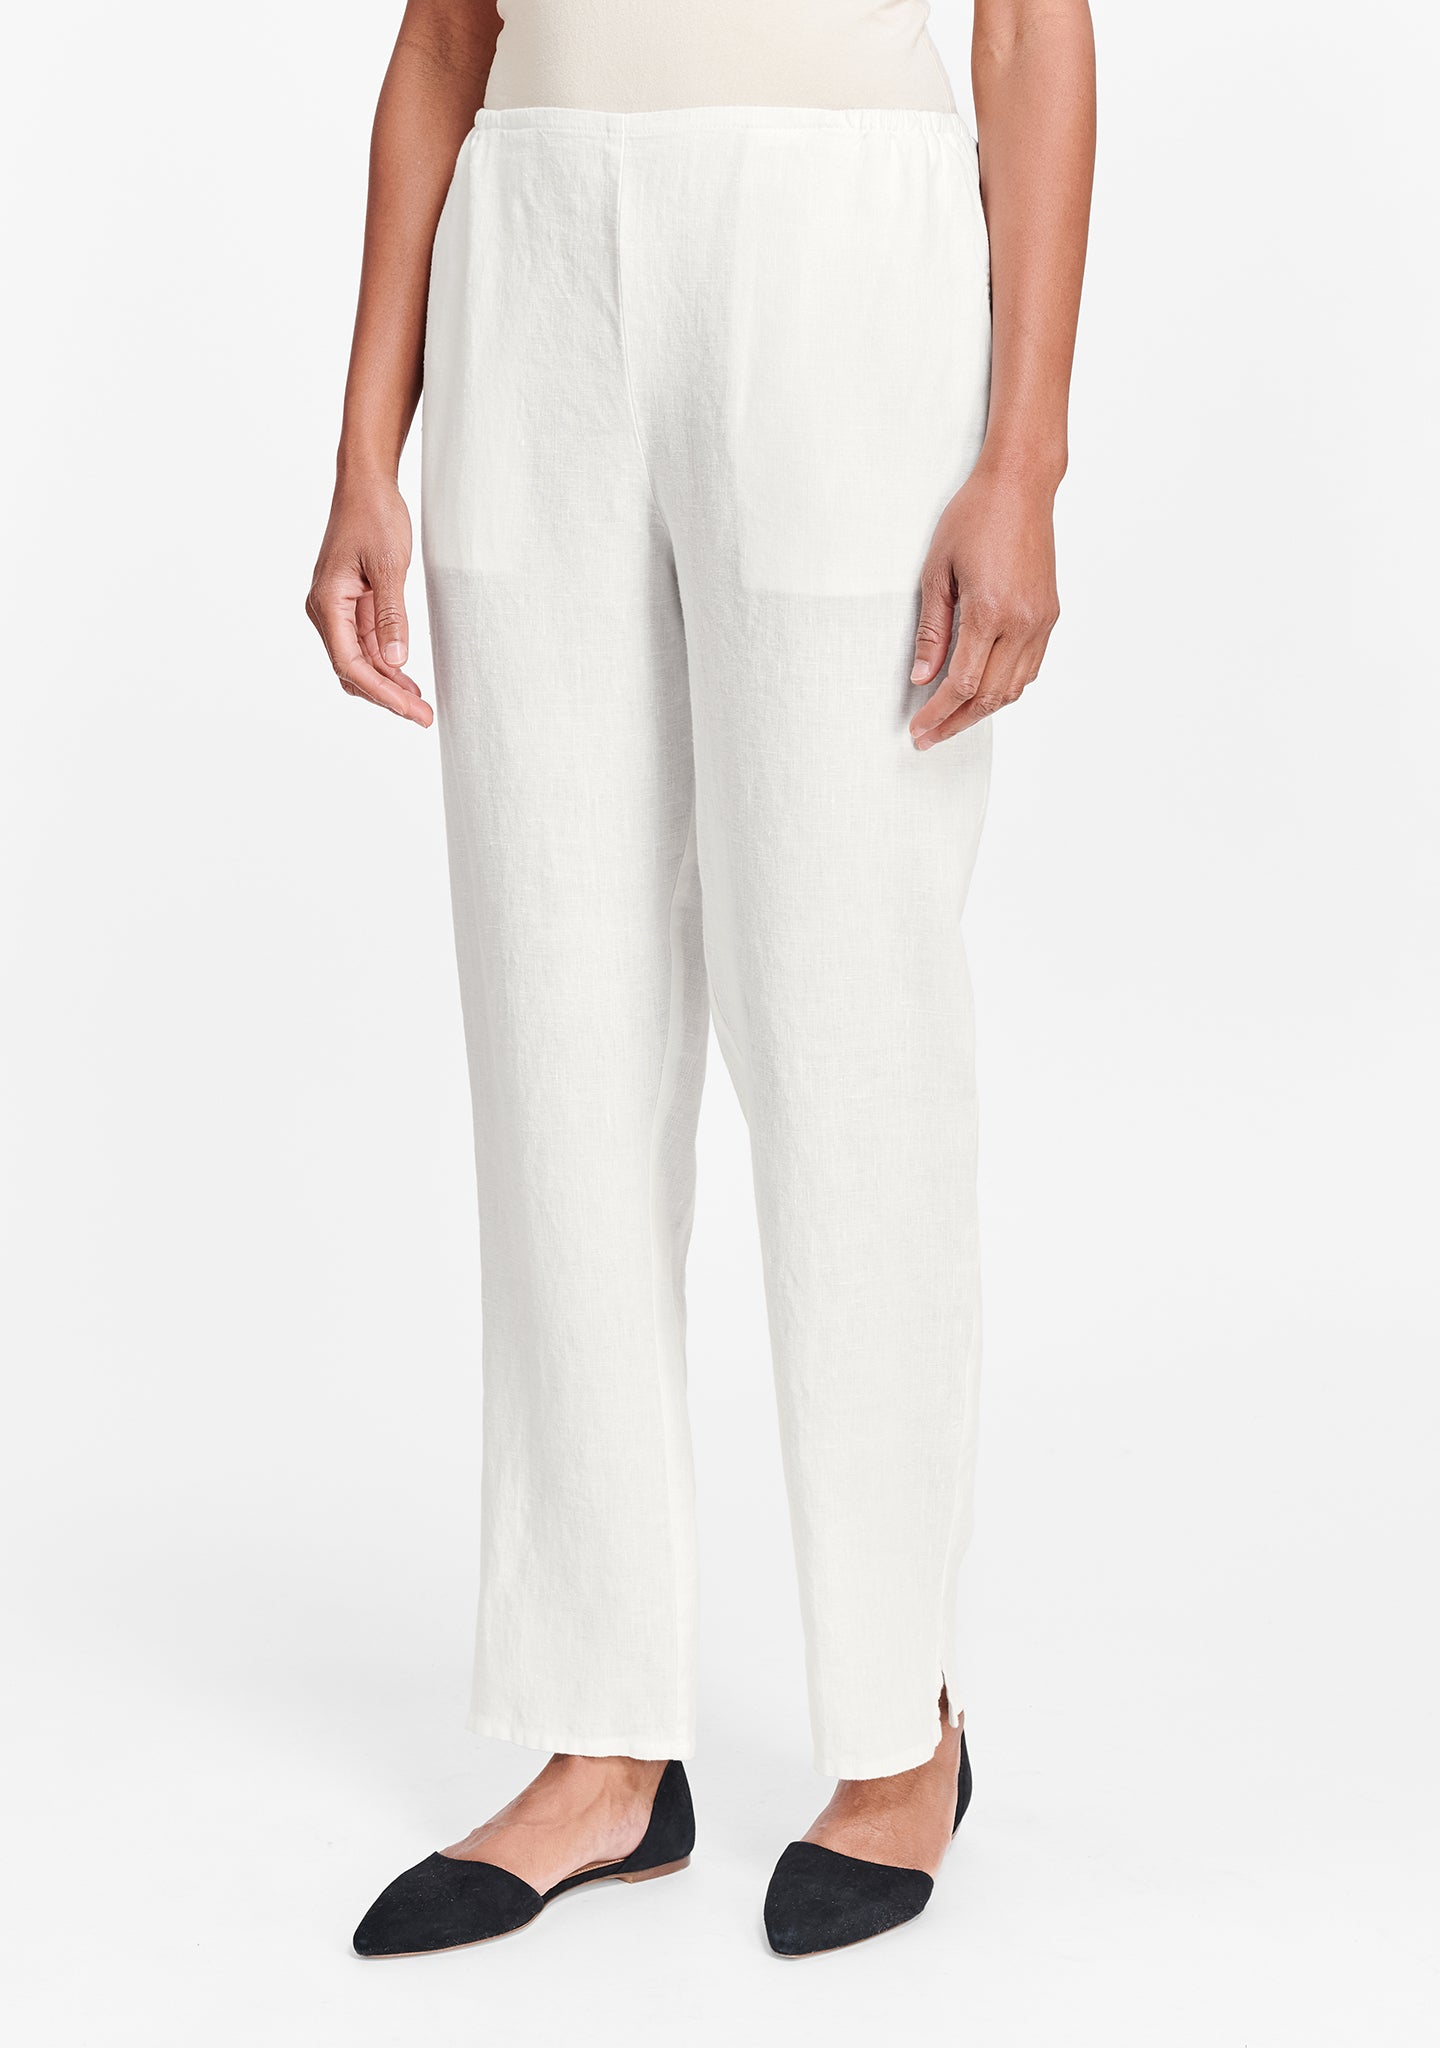 pocketed social pant white